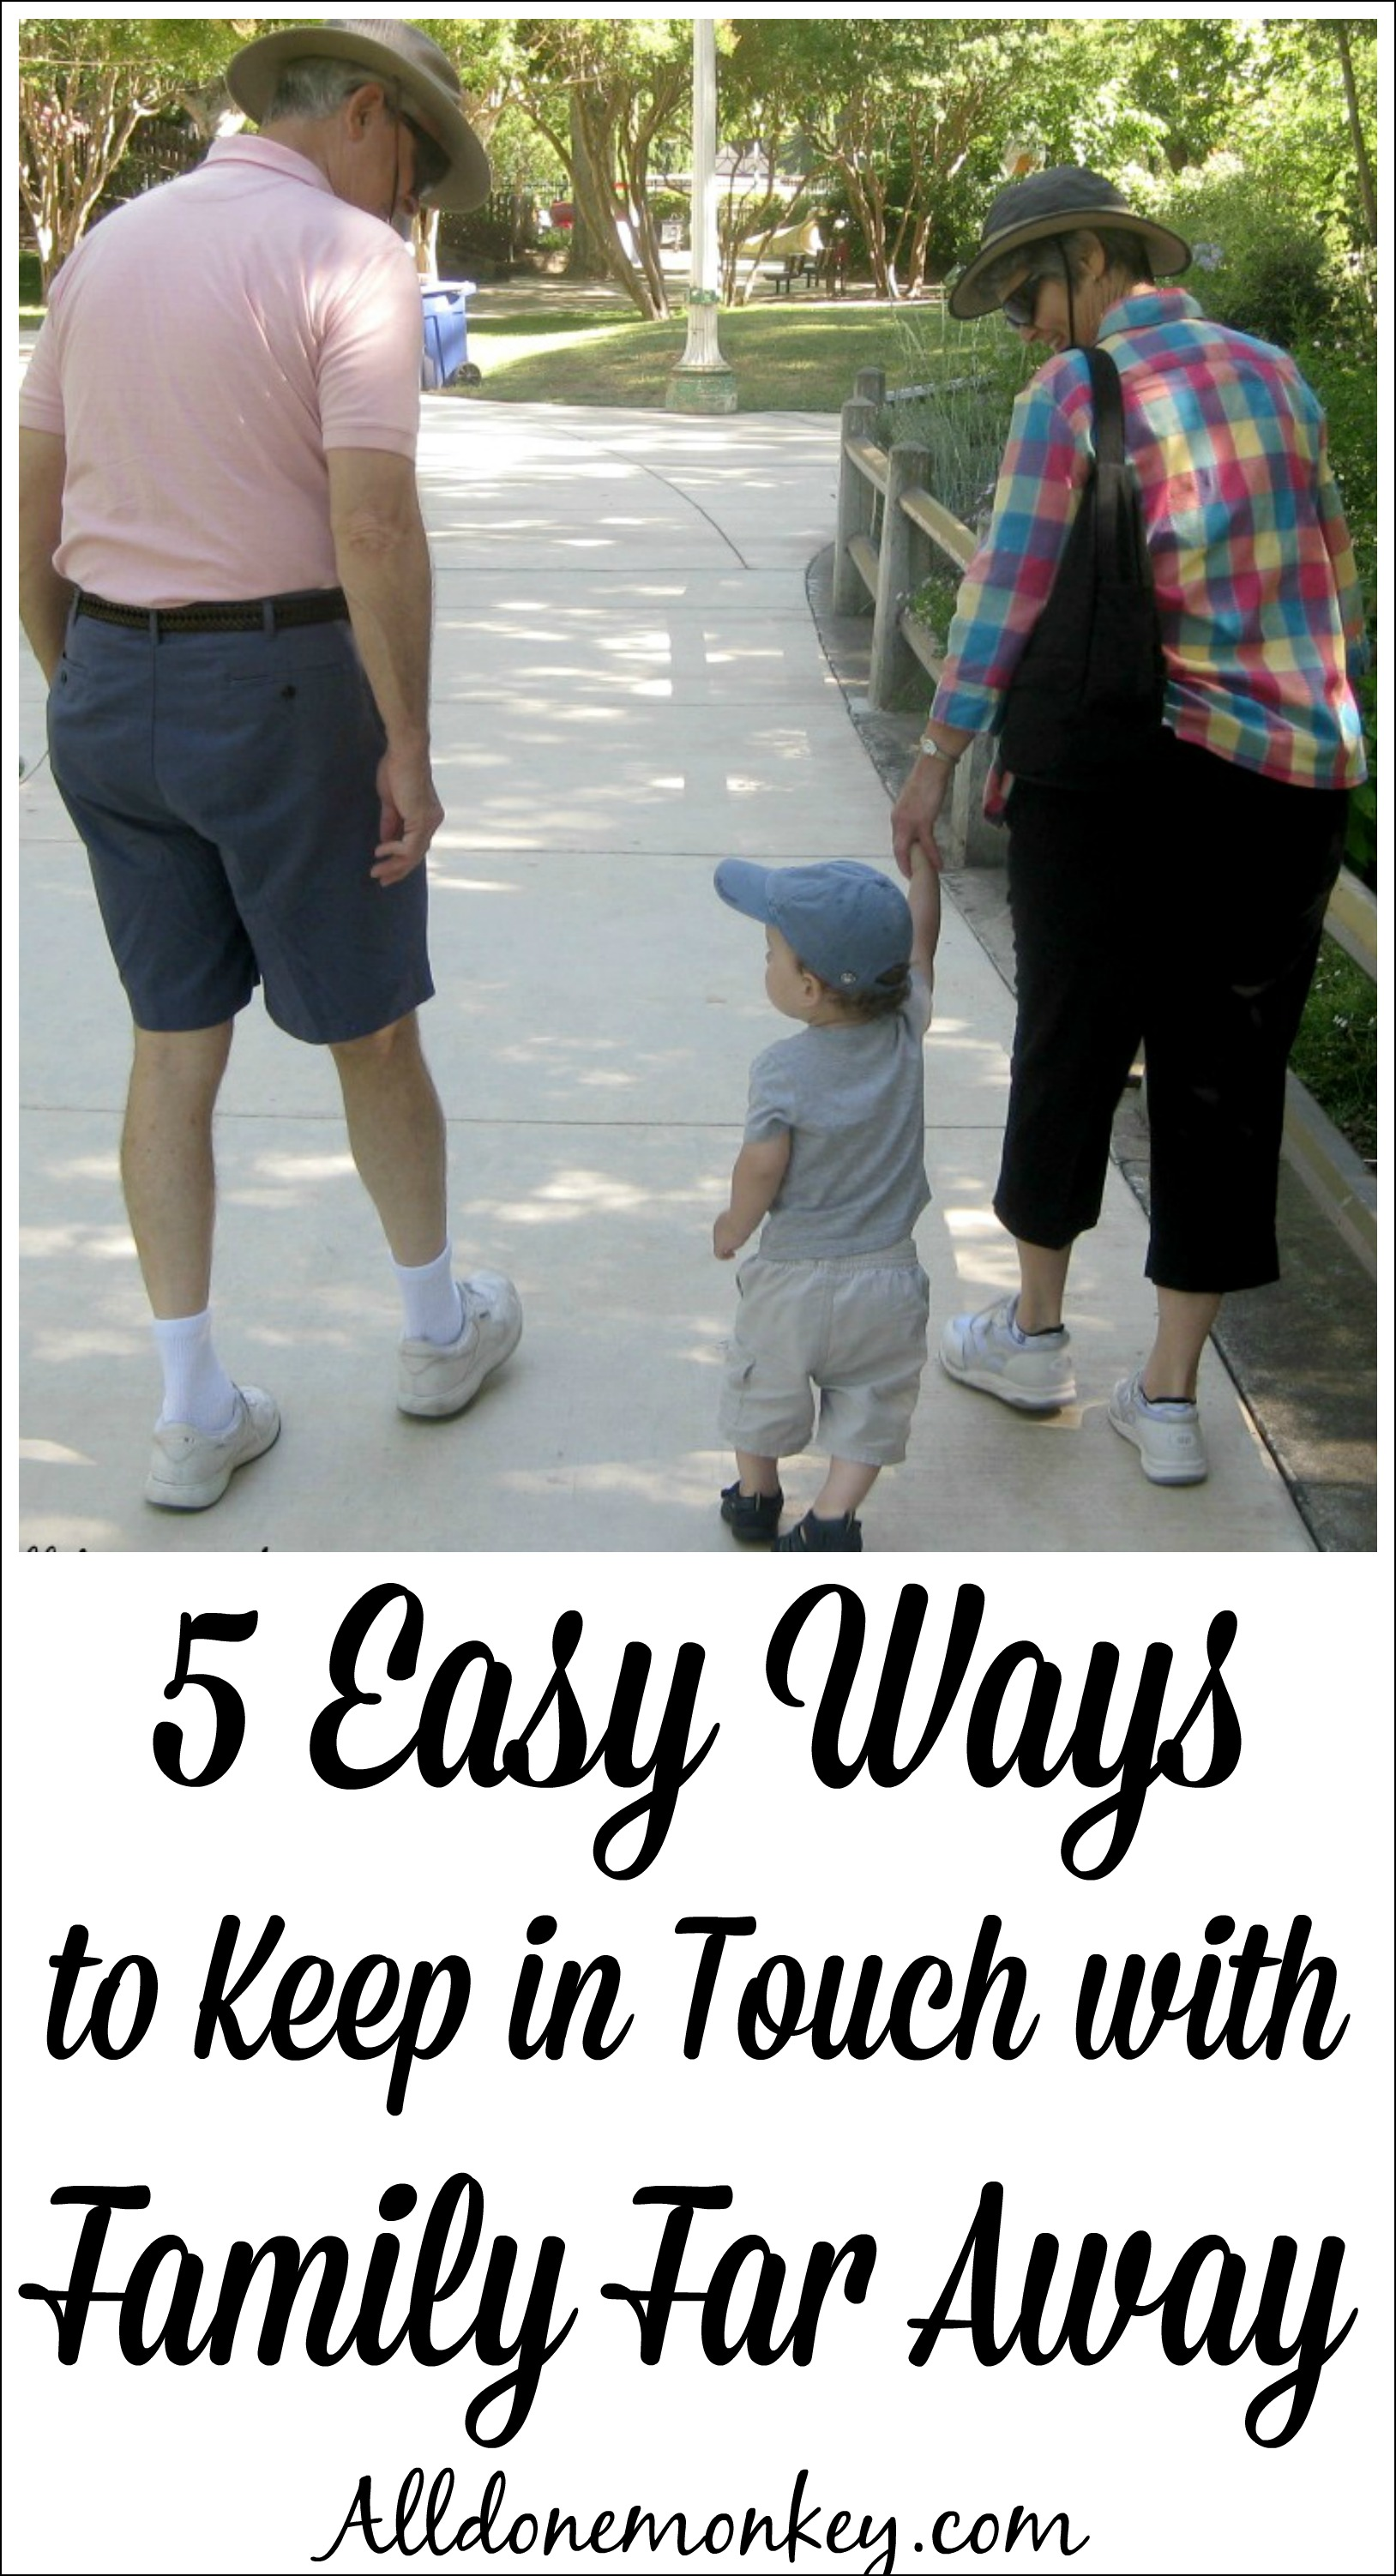 5 Easy Ways to Keep in Touch with Family Far Away | Alldonemonkey.com